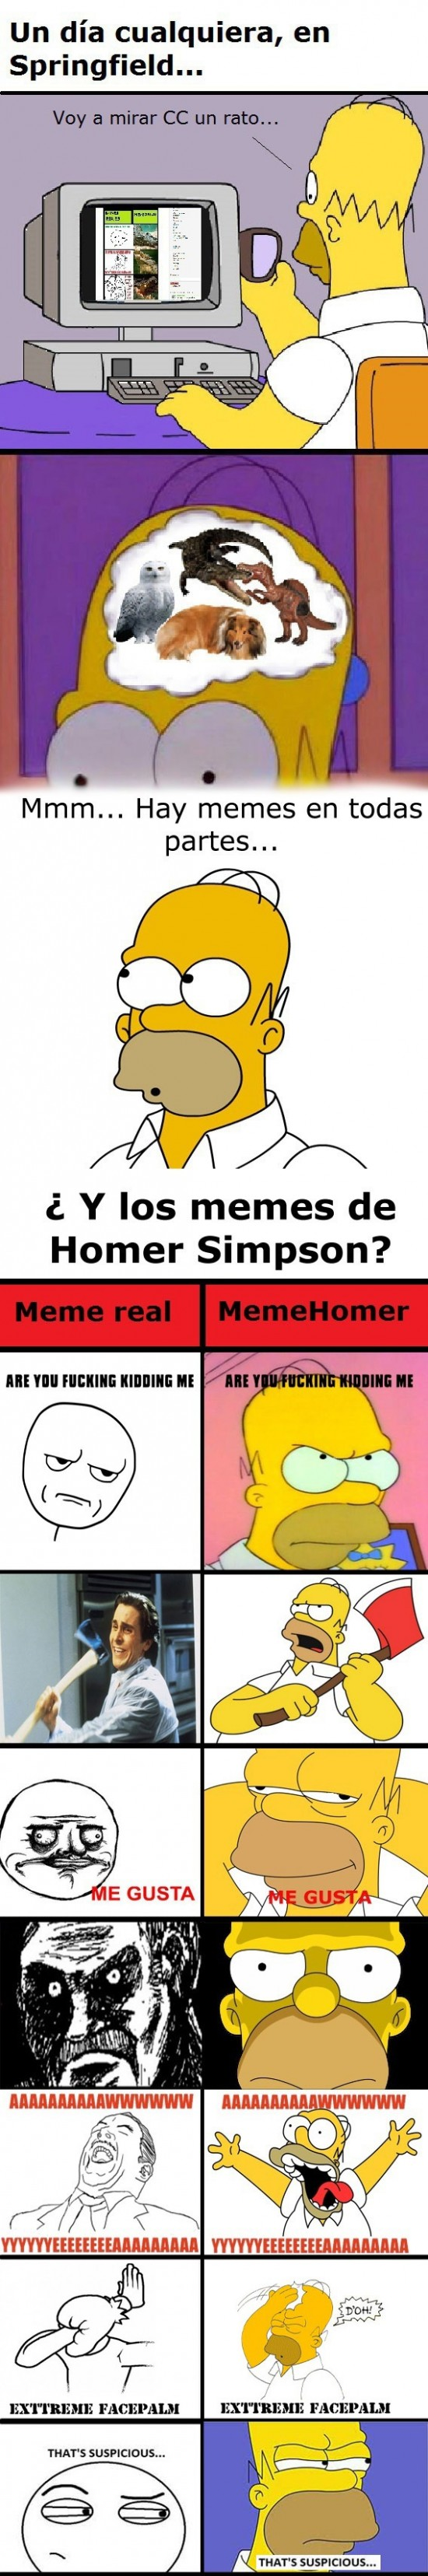 Mix - MemeHomer's